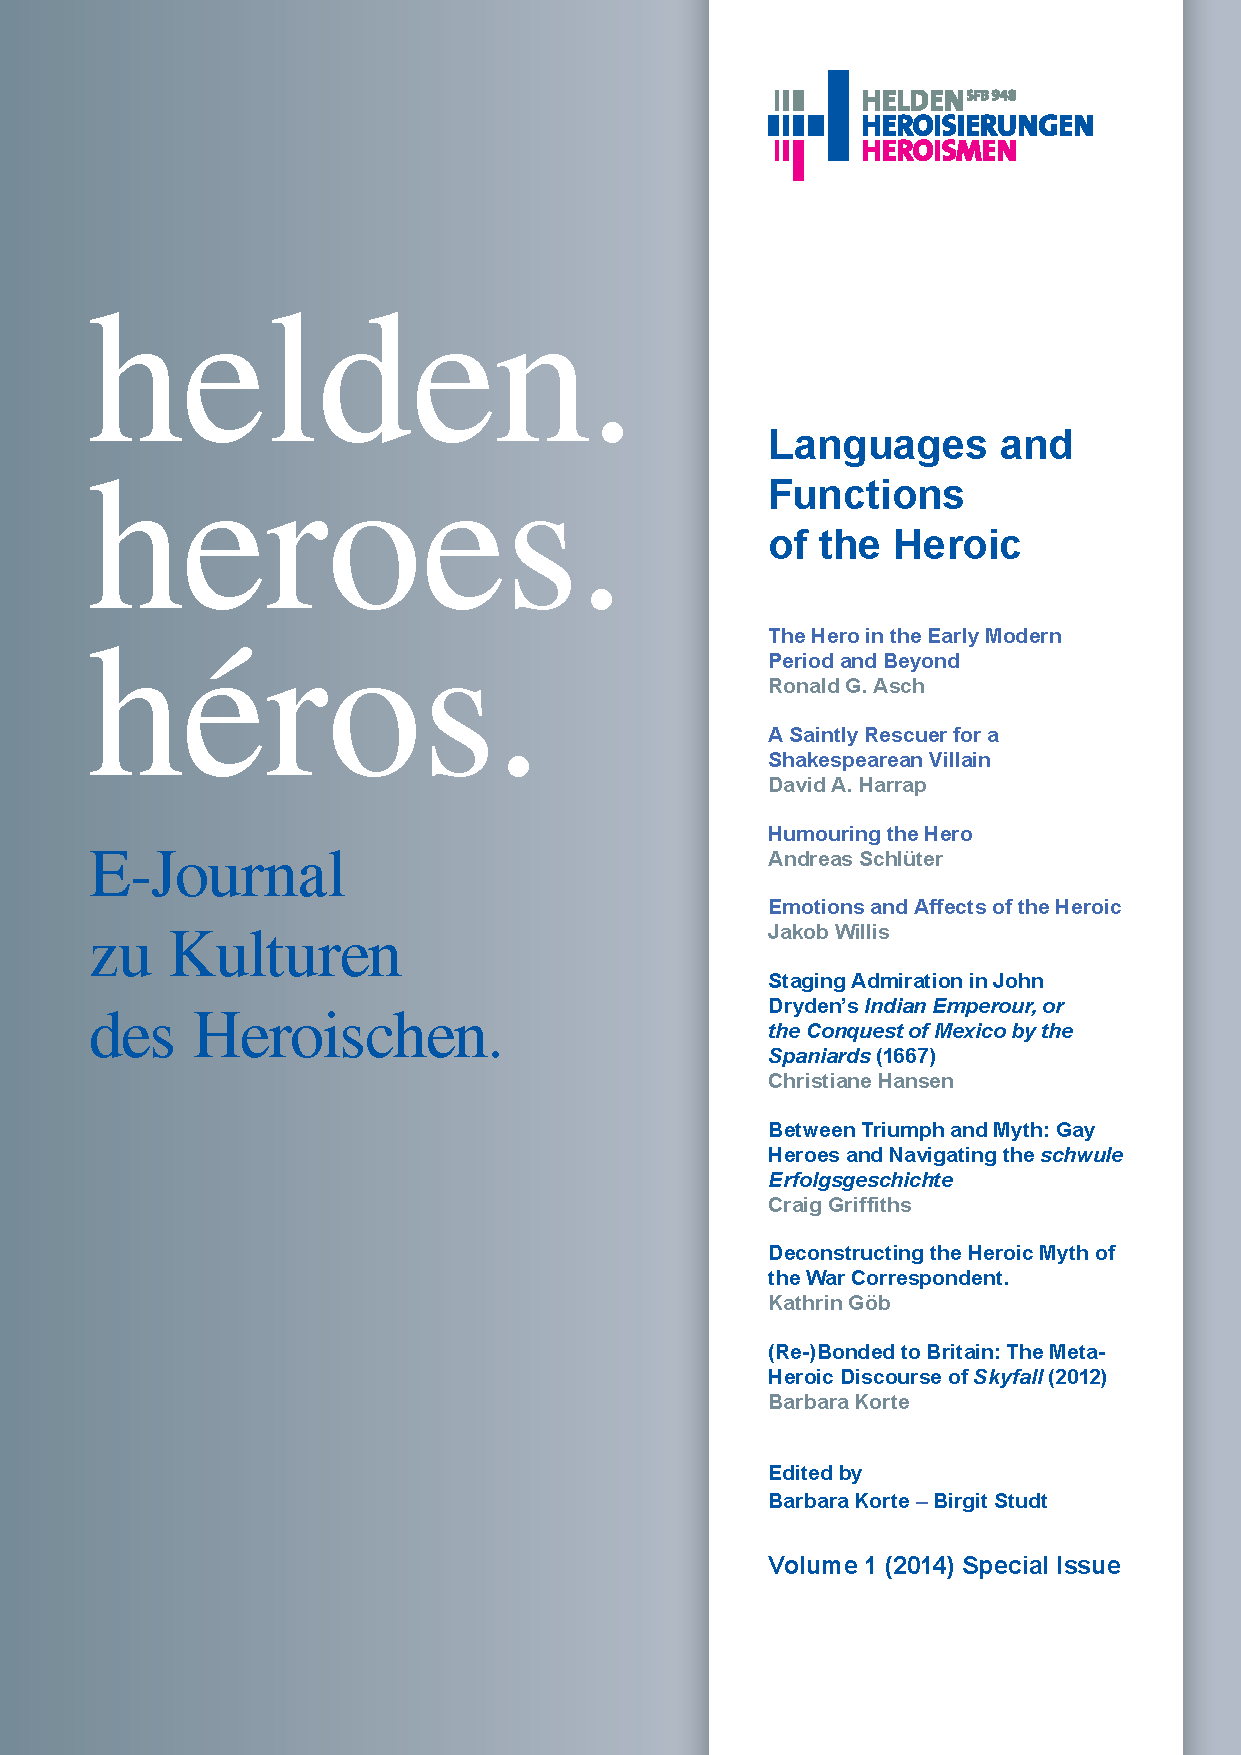 Languages and Functions of the Heroic